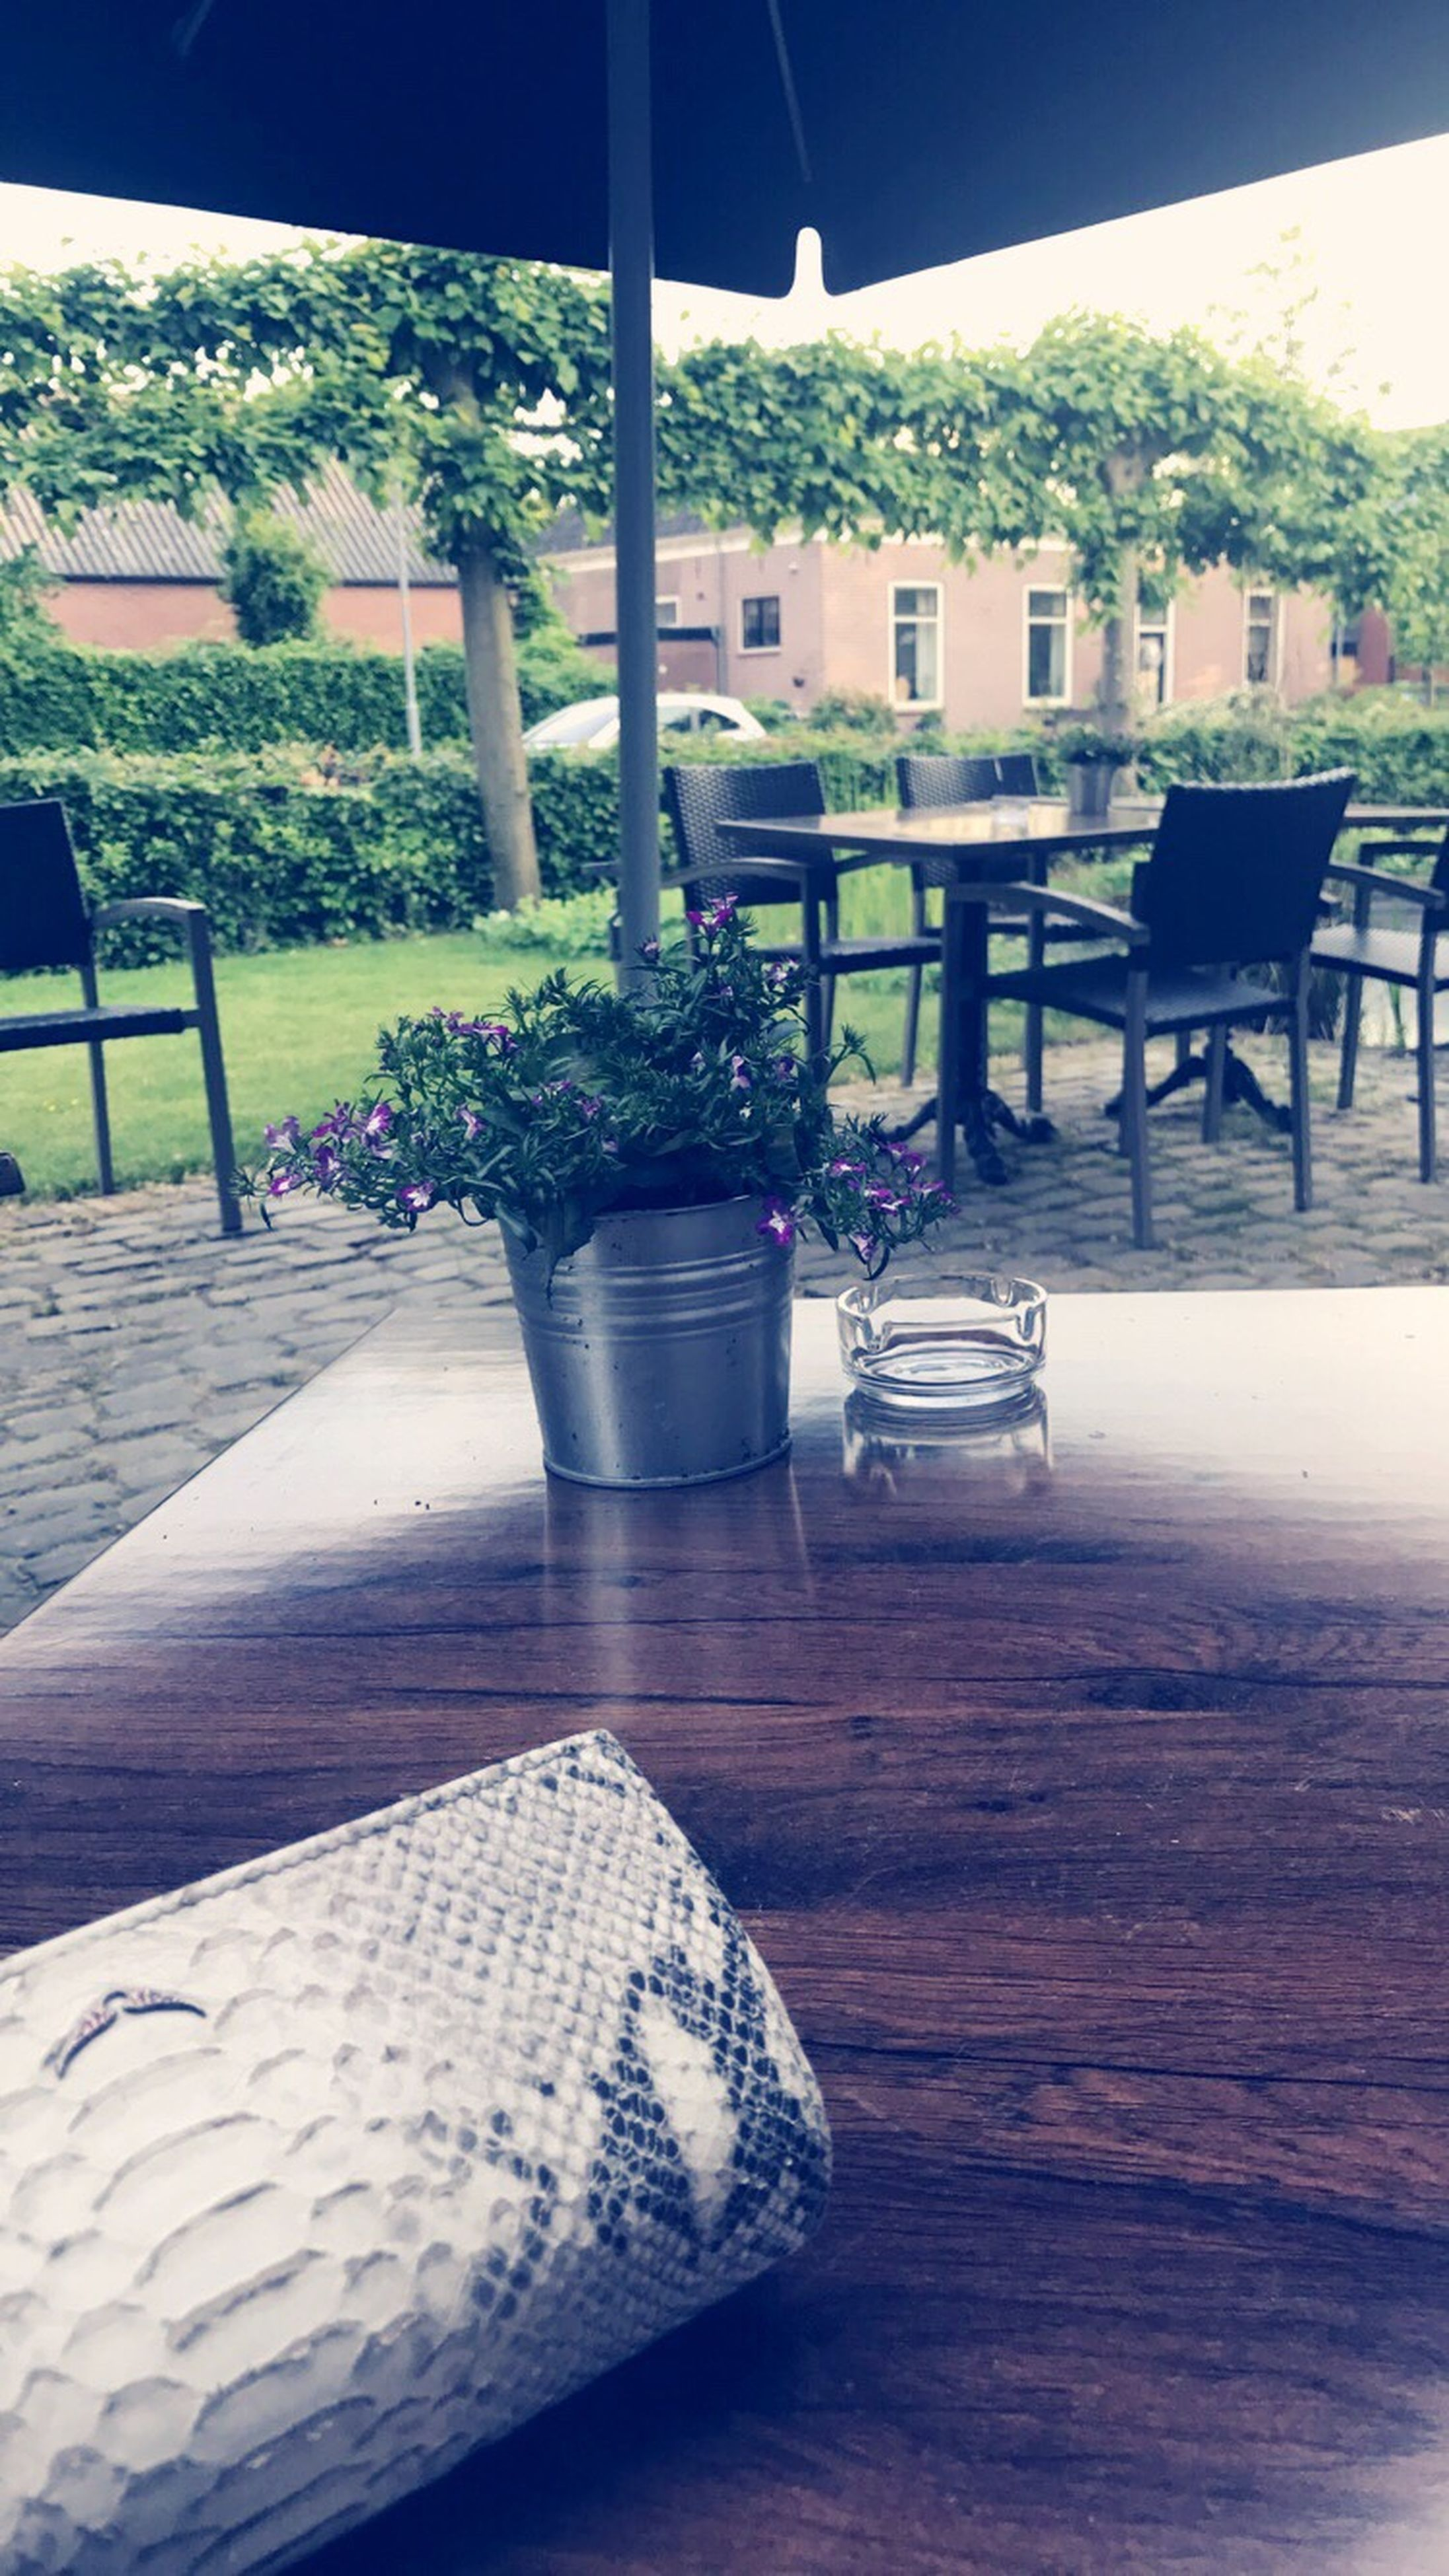 table, cafe, chair, no people, day, outdoors, food, nature, tree, close-up